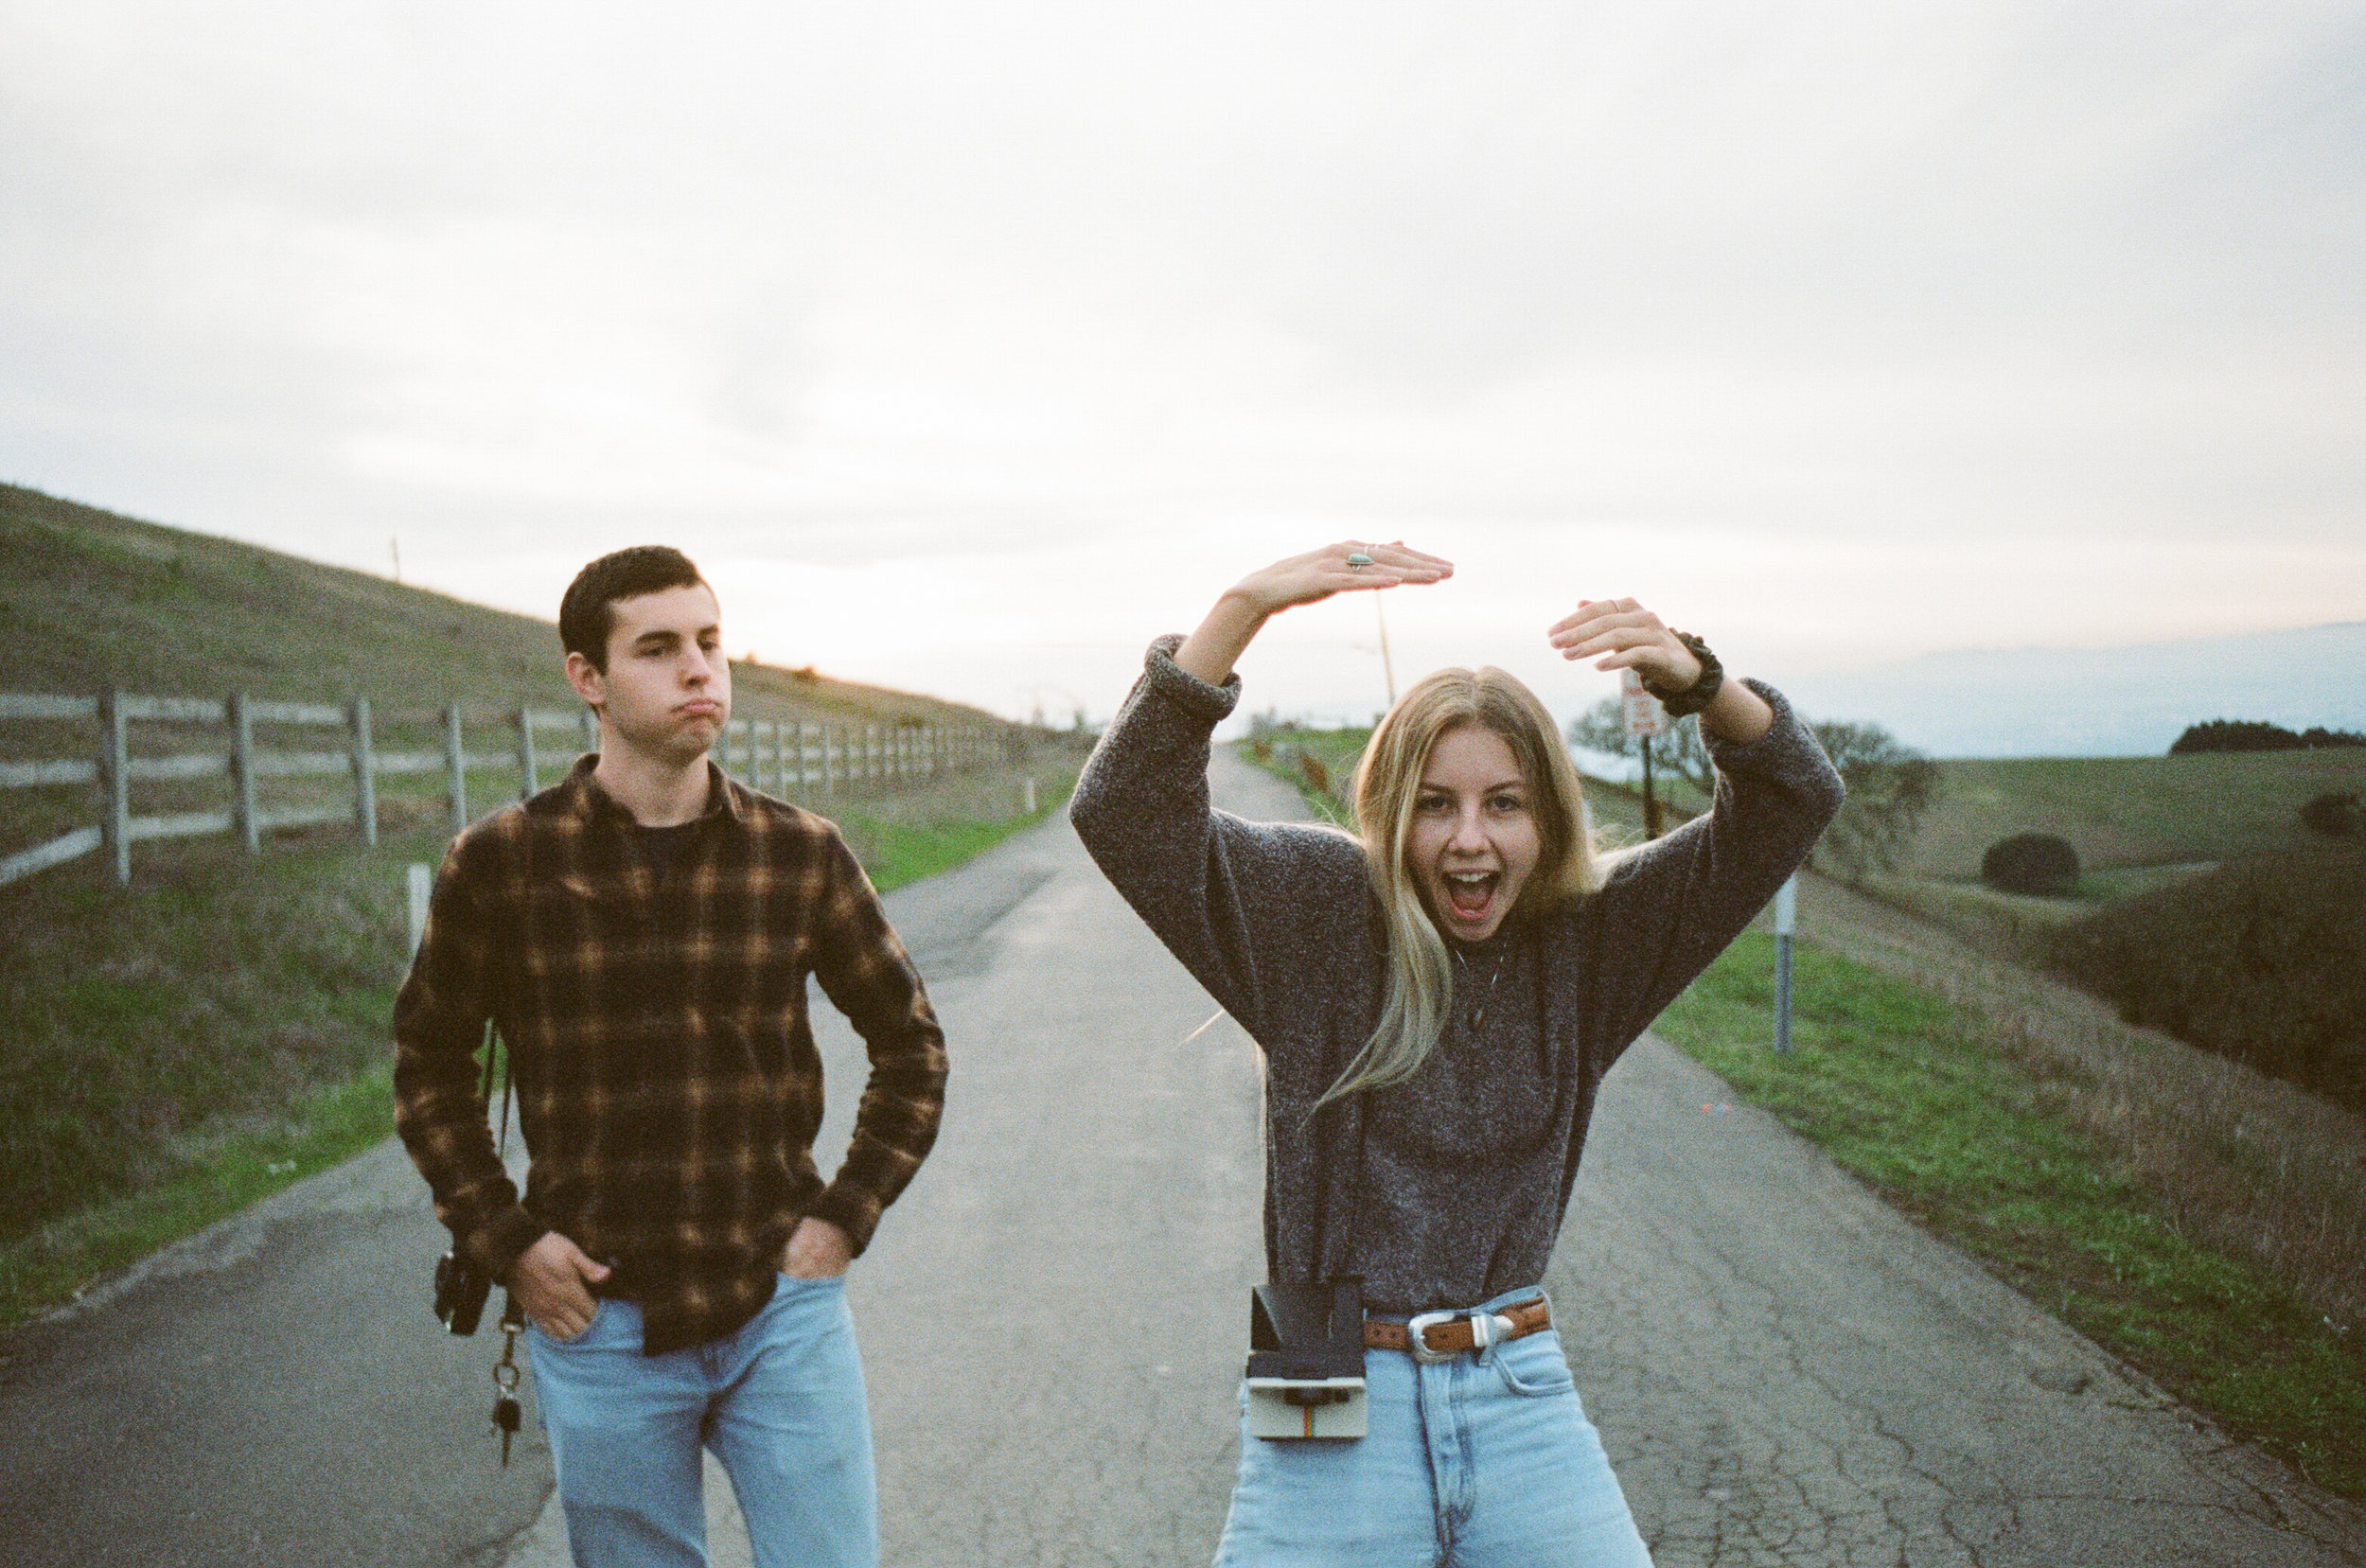 hannah&cole-california-film-jan2019-peytoncurry-000098780027.jpg